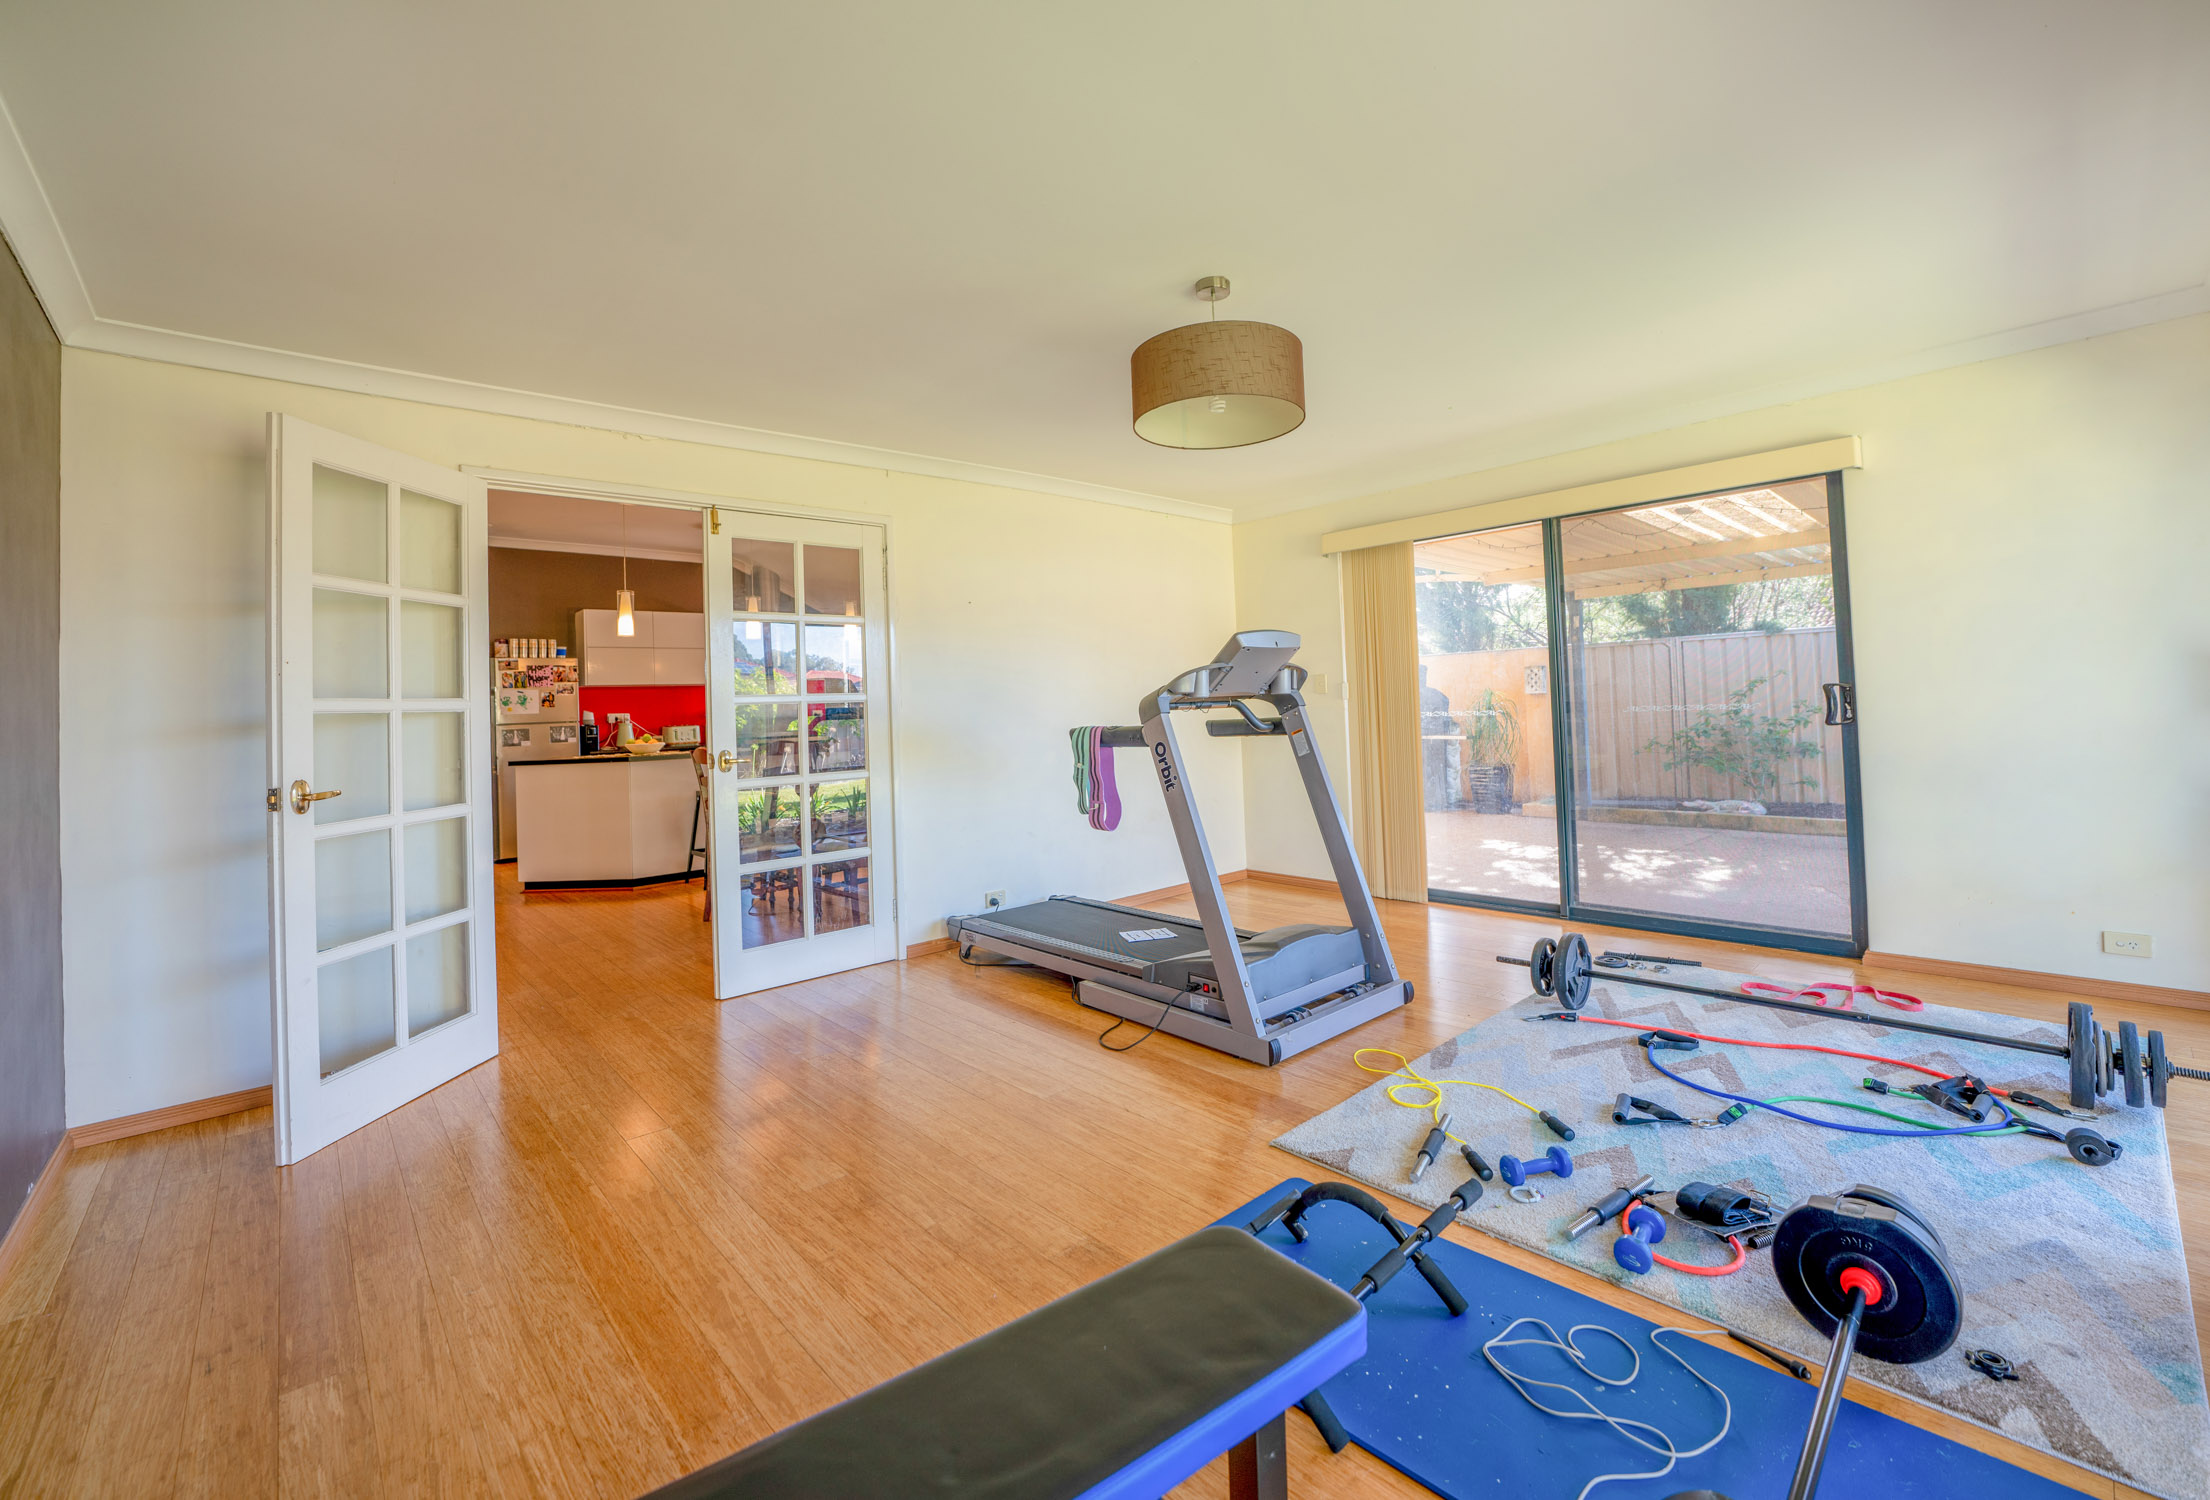 Property for sale in CANNING VALE, 24 Packenham Promenade : Attree Real Estate